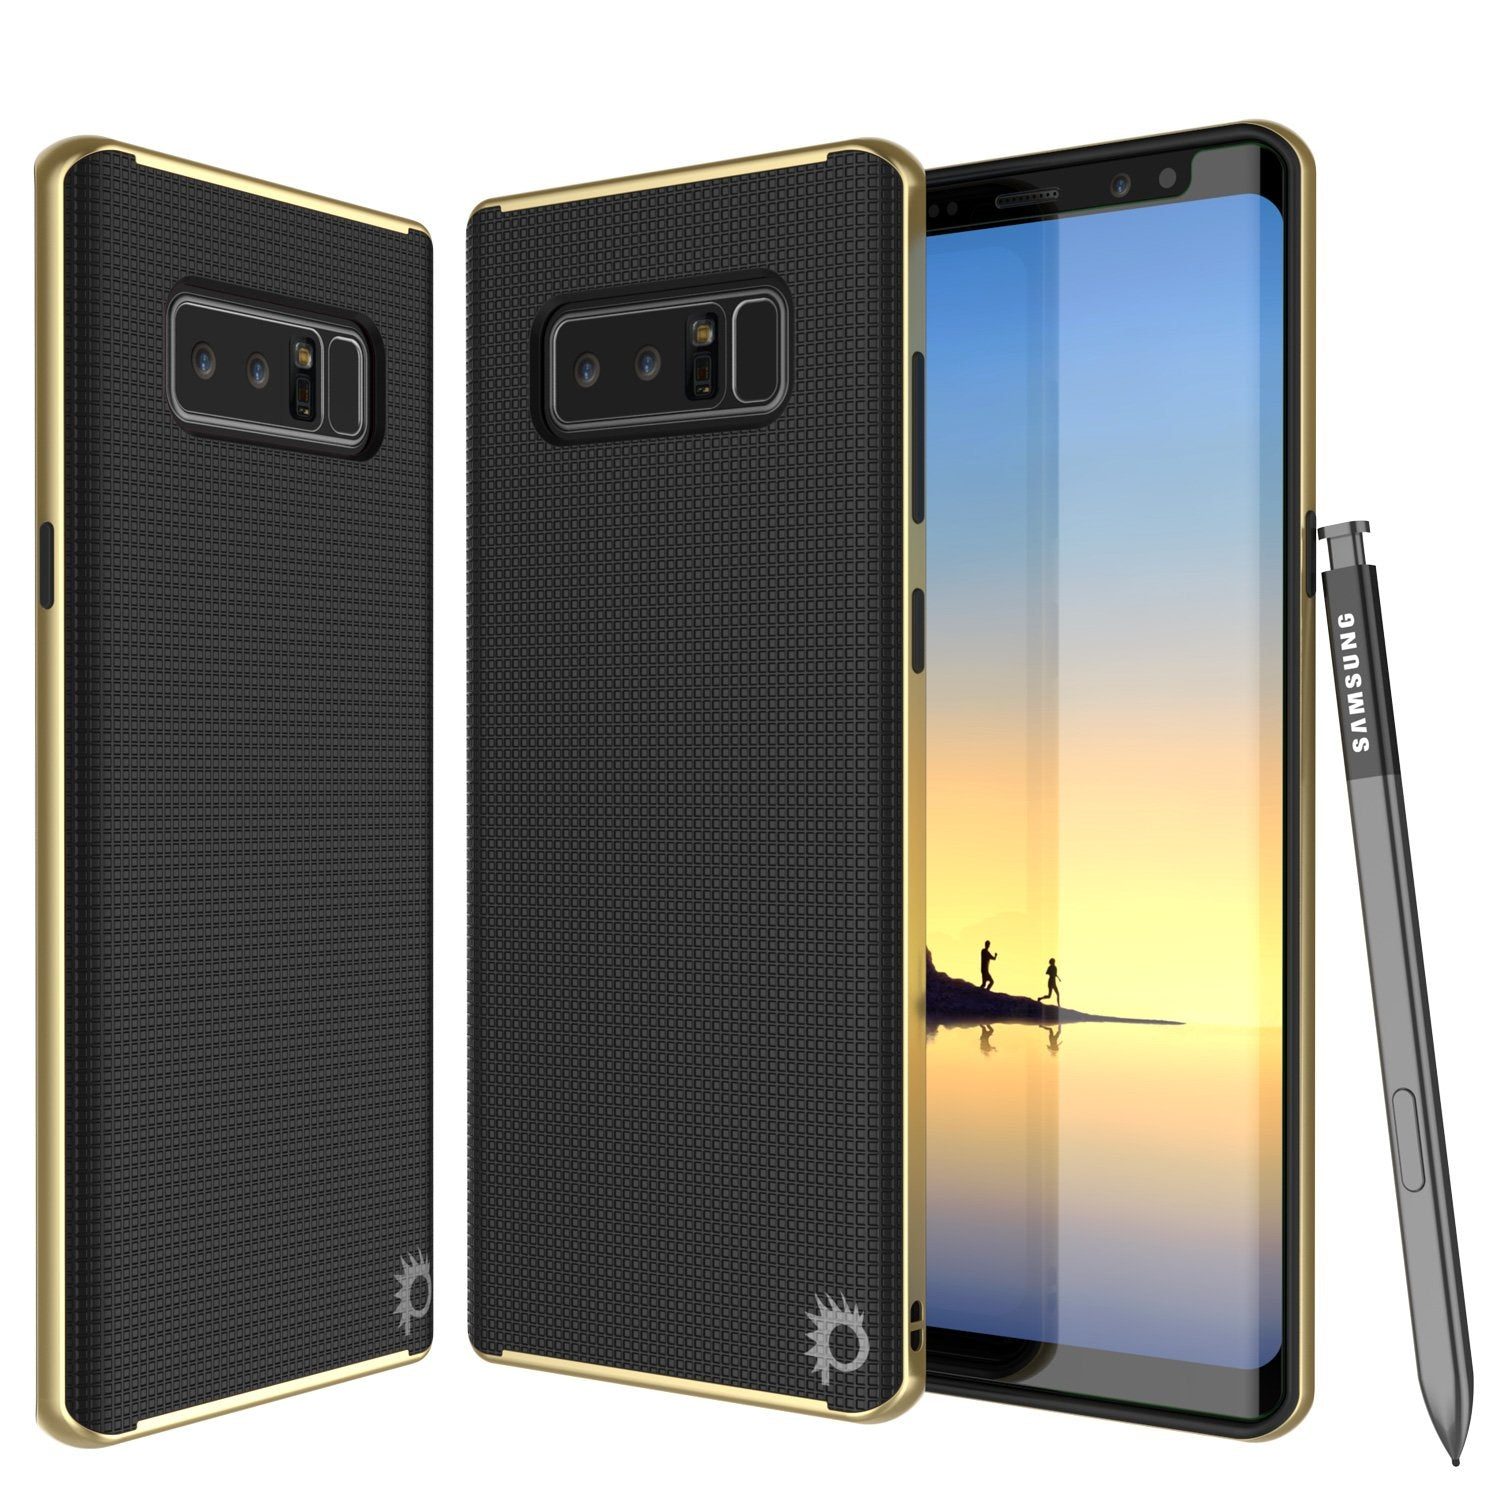 Galaxy Note 8 Case, PunkCase [Stealth Series] Hybrid 3-Piece Shockproof Dual Layer Cover [Non-Slip] [Soft TPU + PC Bumper] with PUNKSHIELD Screen Protector for Samsung Note 8 [Gold] - PunkCase NZ